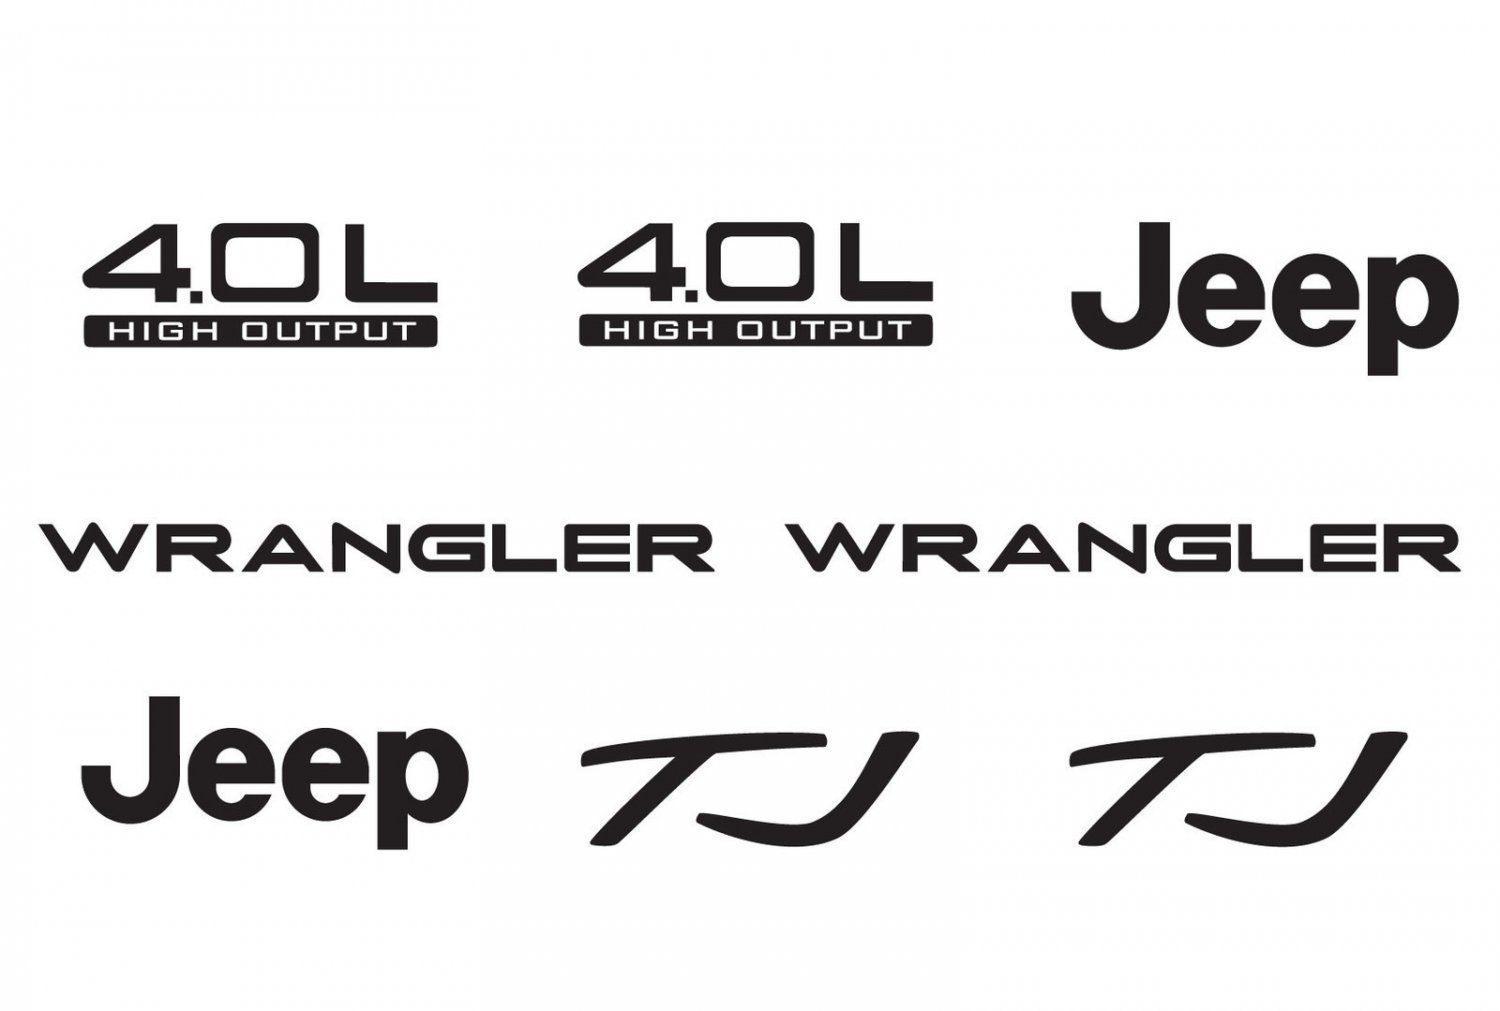 Jeep Wrangler Tj 4.0L 4.0 L Refresh Vinyl Decal Set